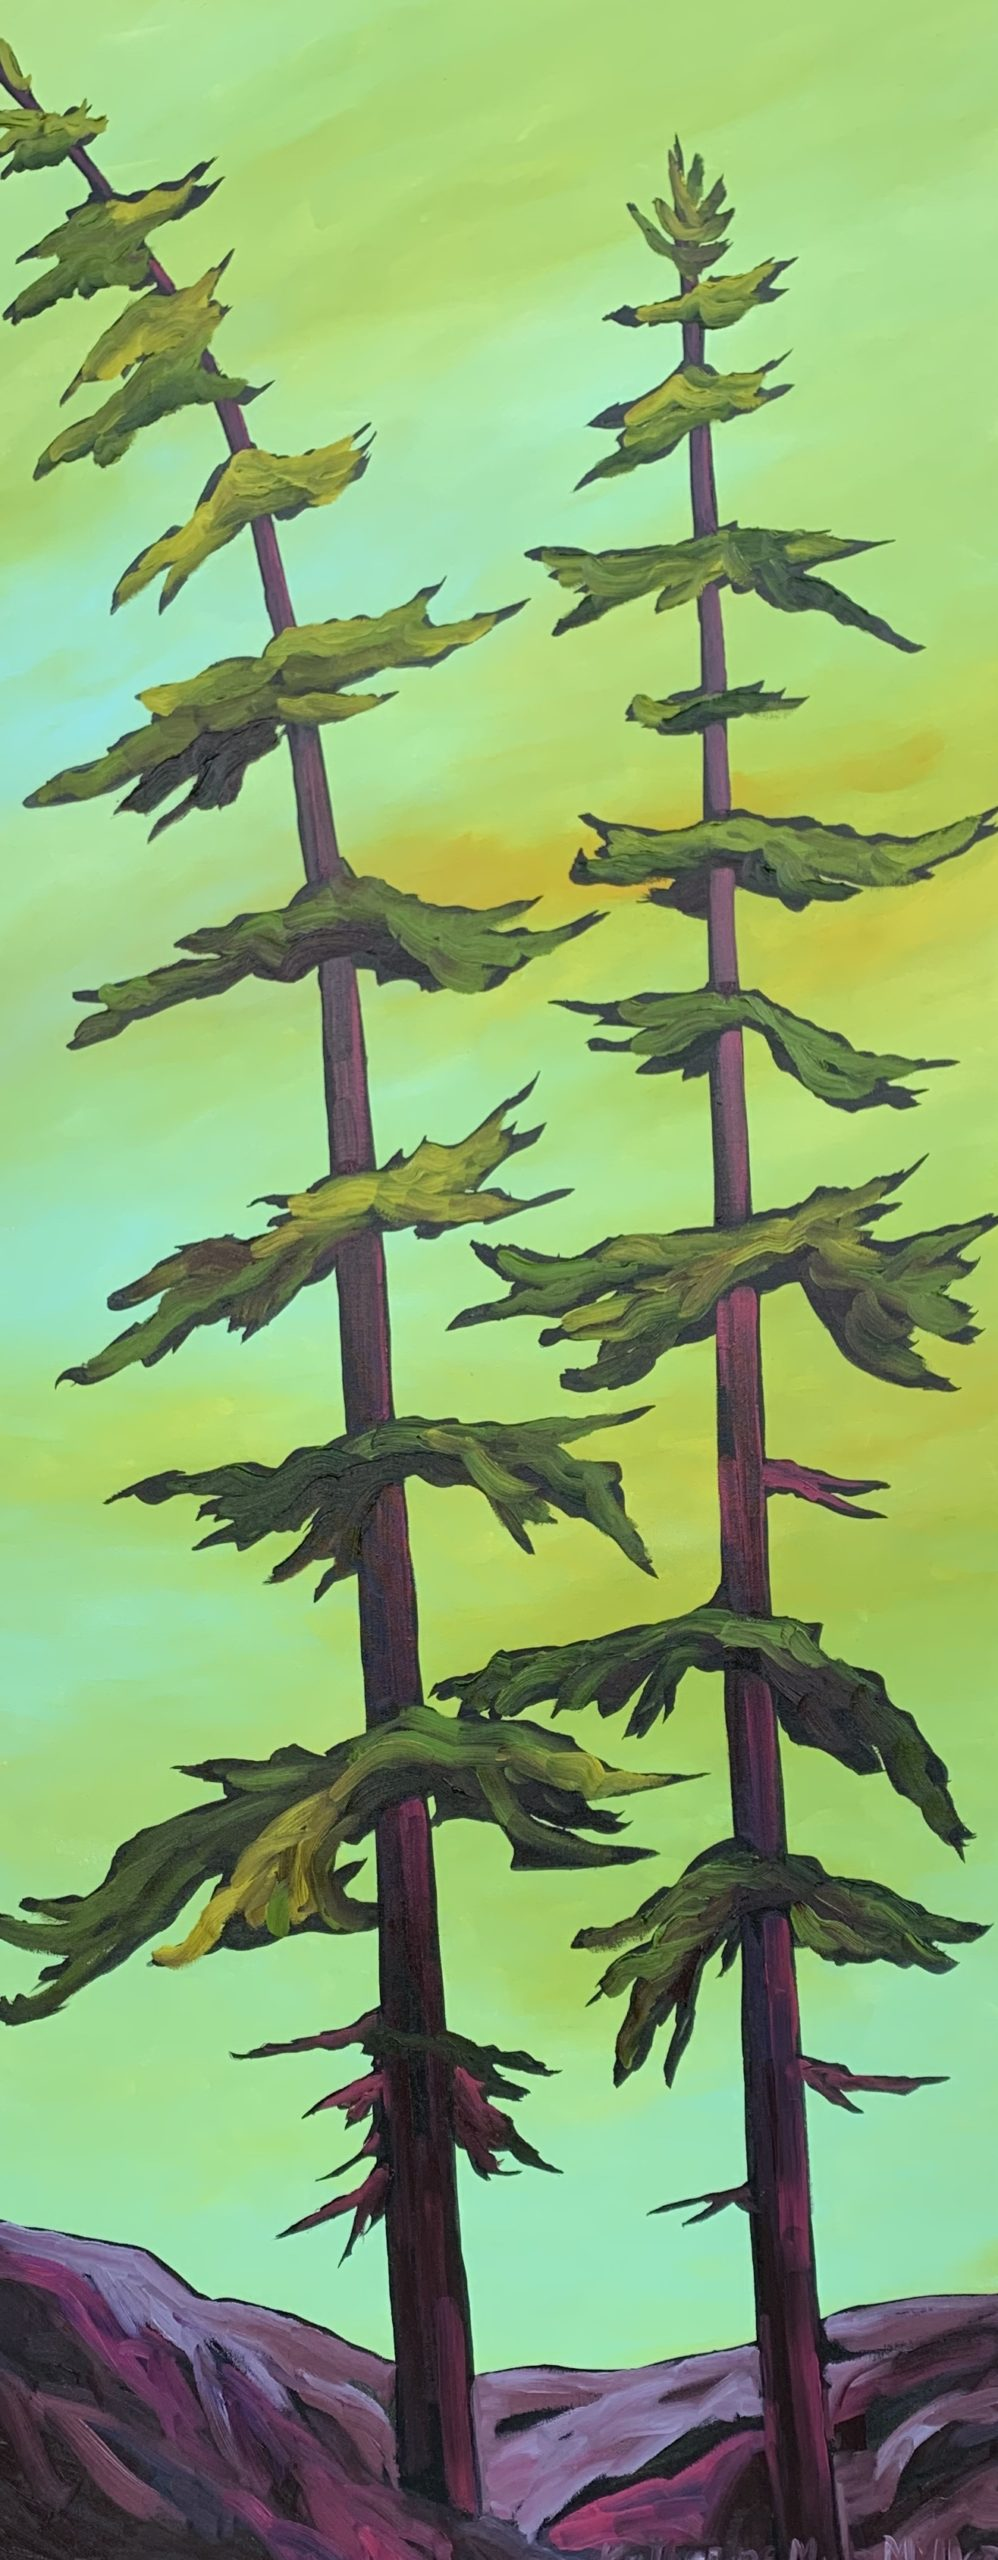 547-Dancing Pines of Greens